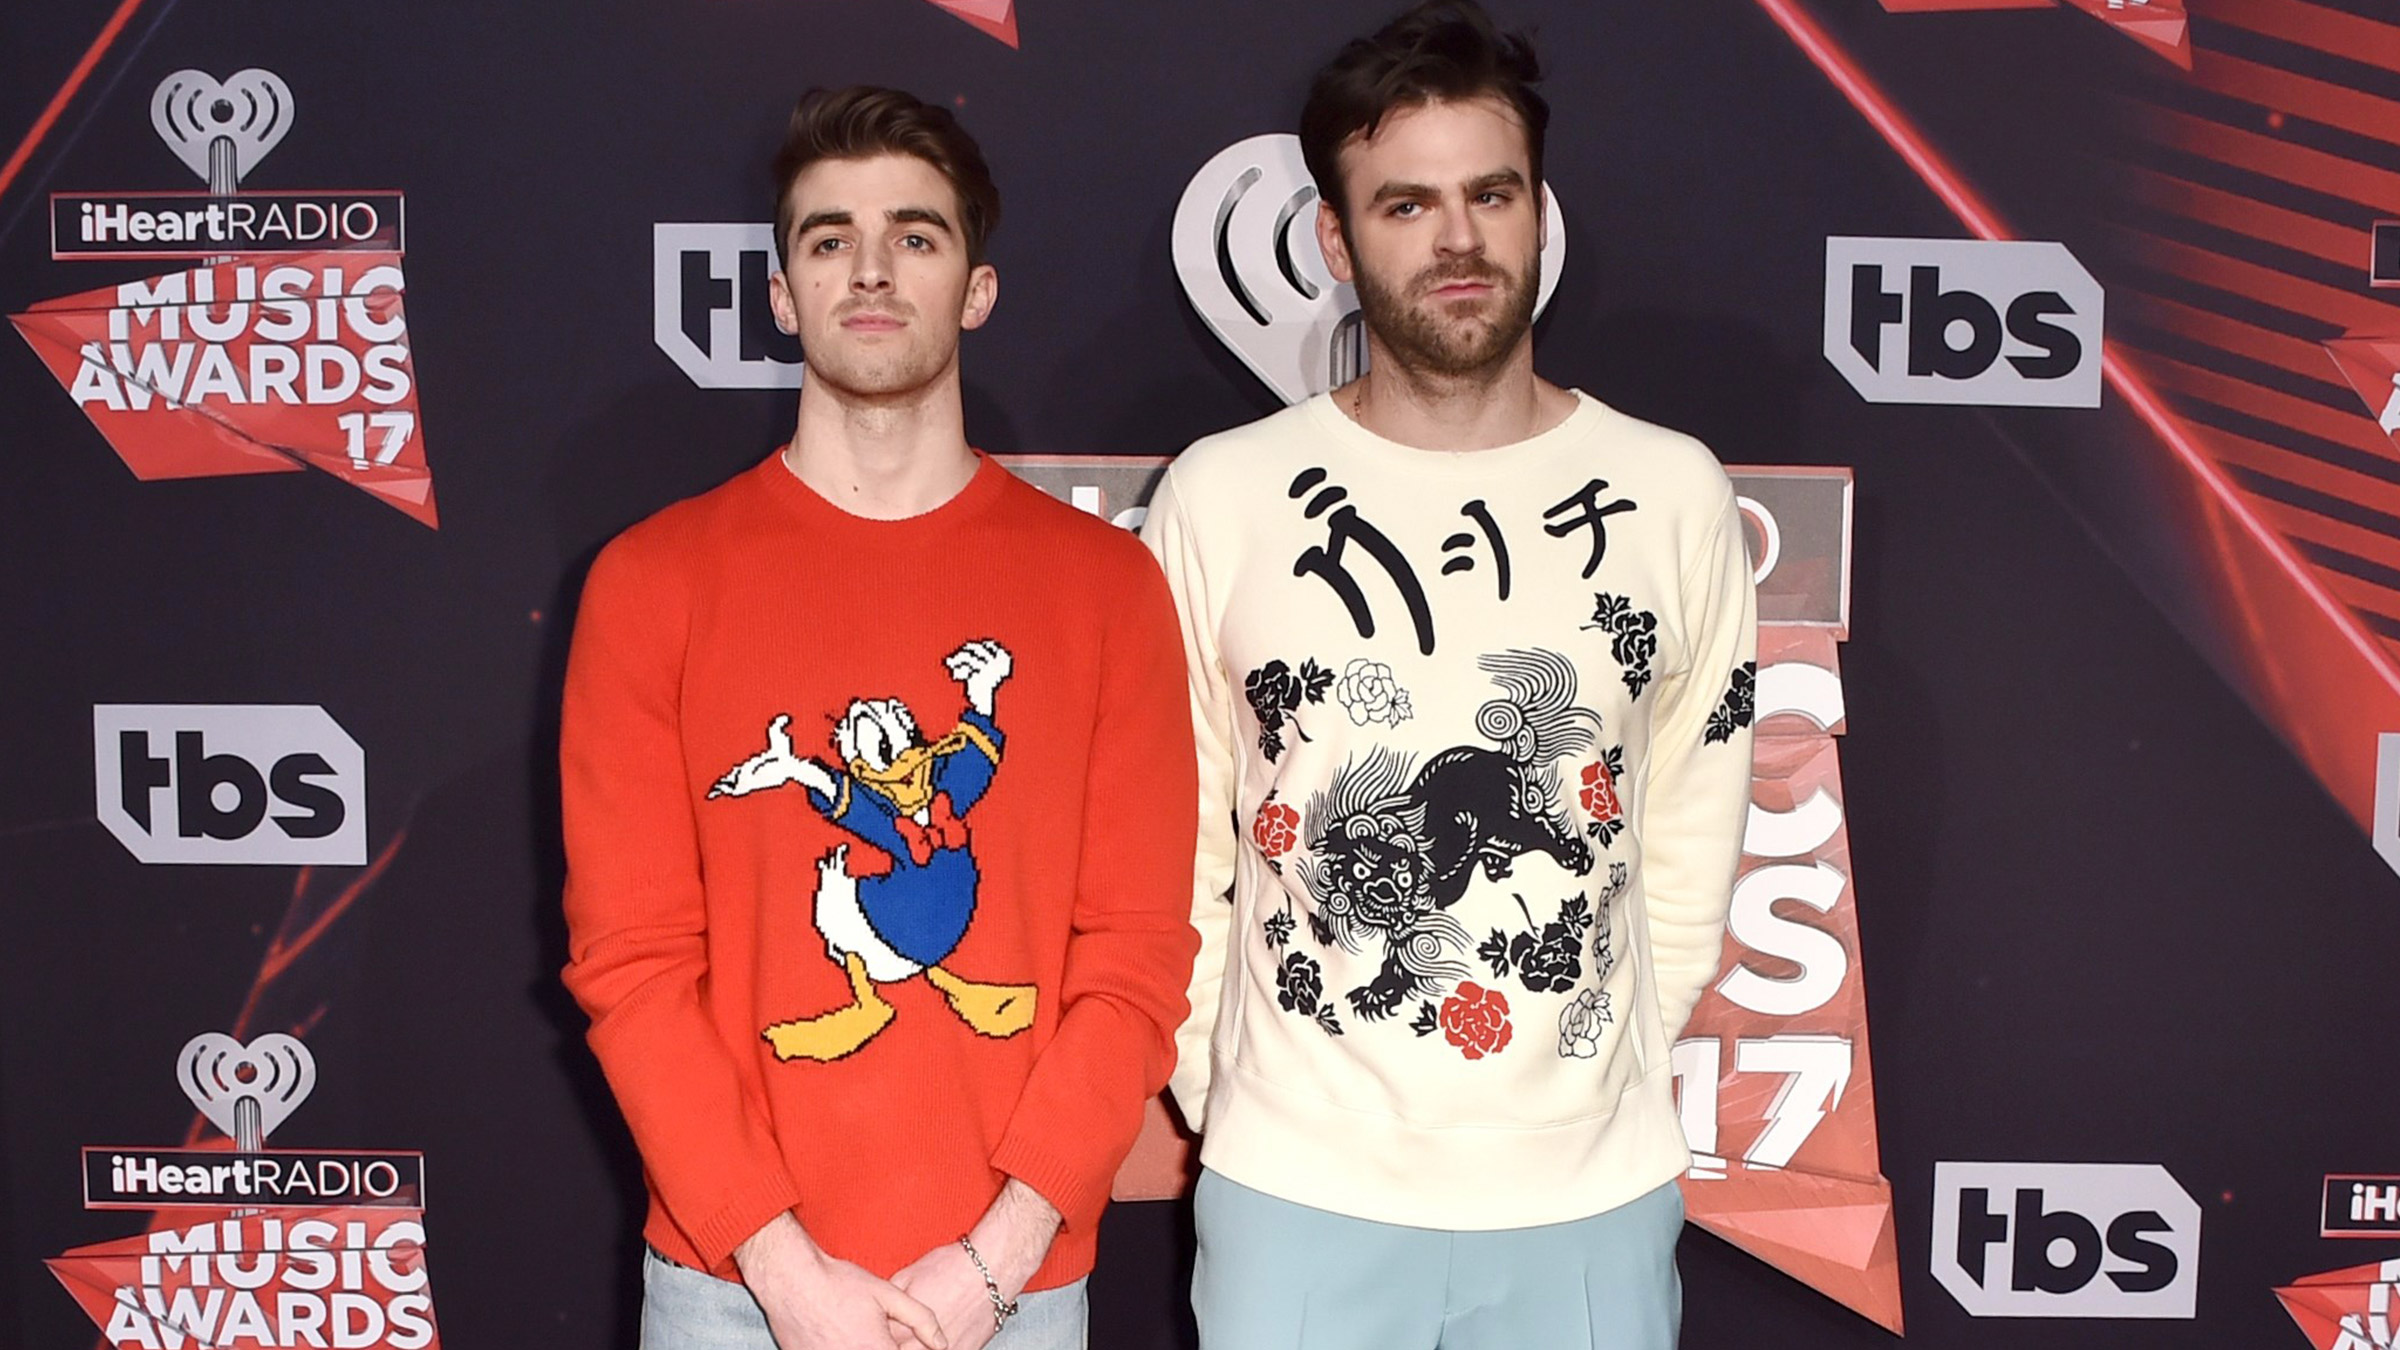 Teasertje chainsmokers